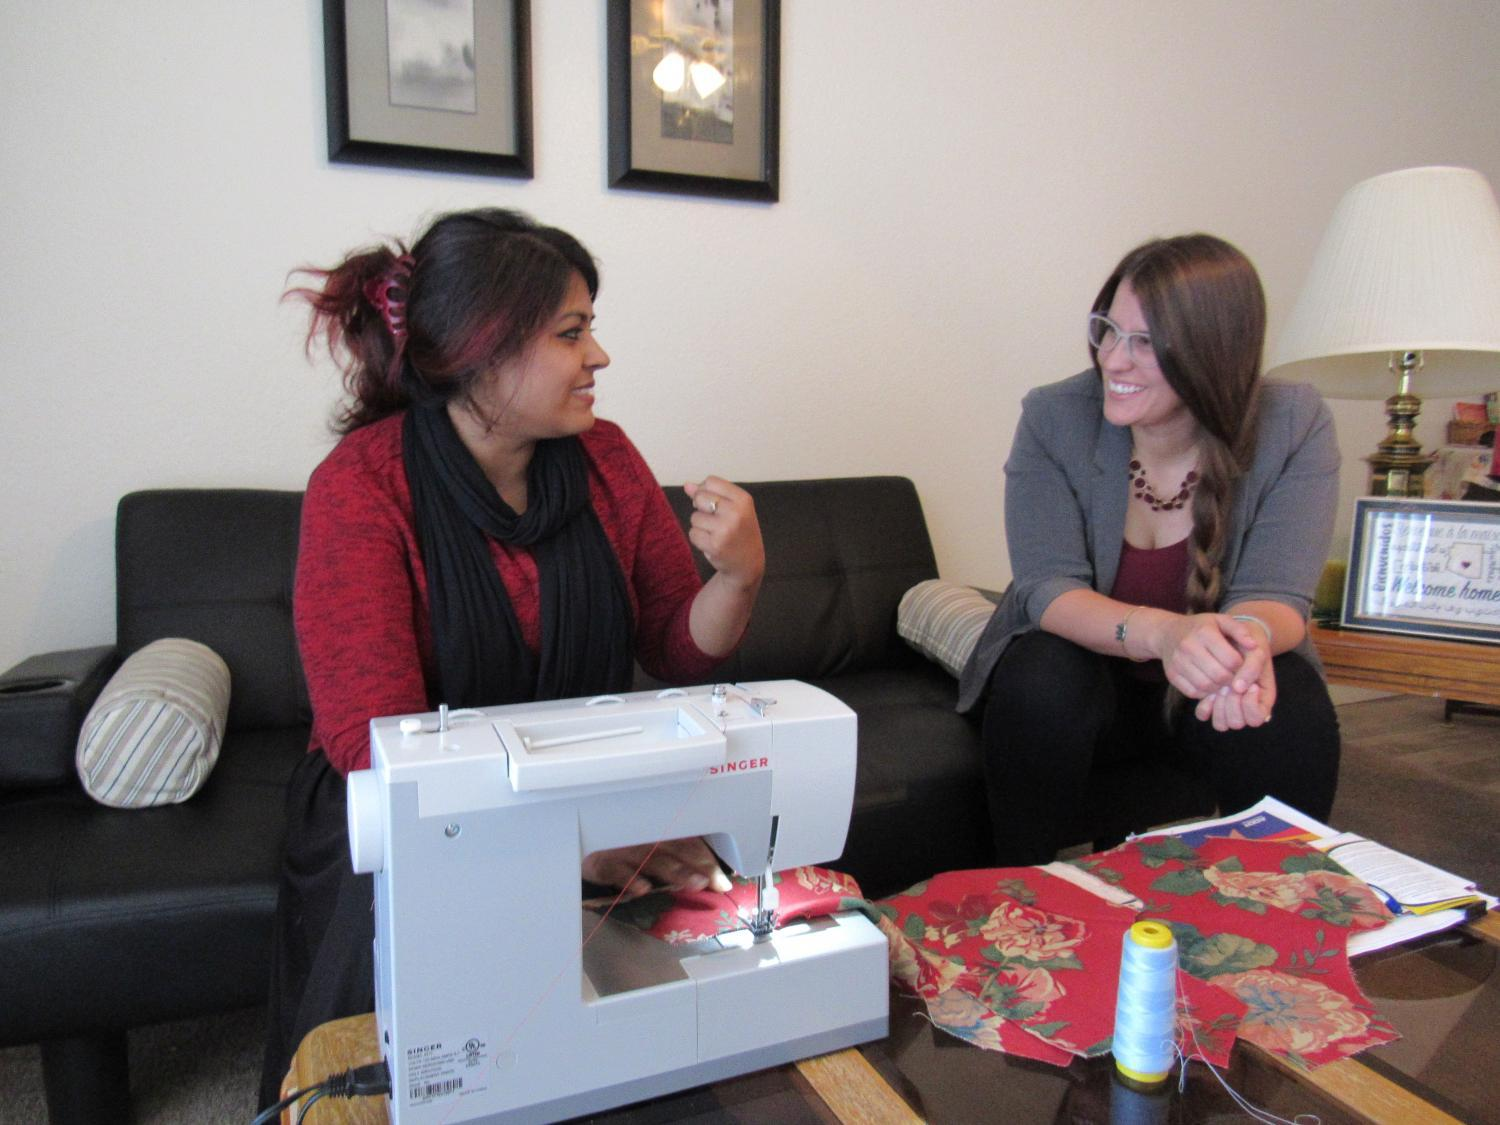 Noreen Amir (left) talks with Danielle Luna